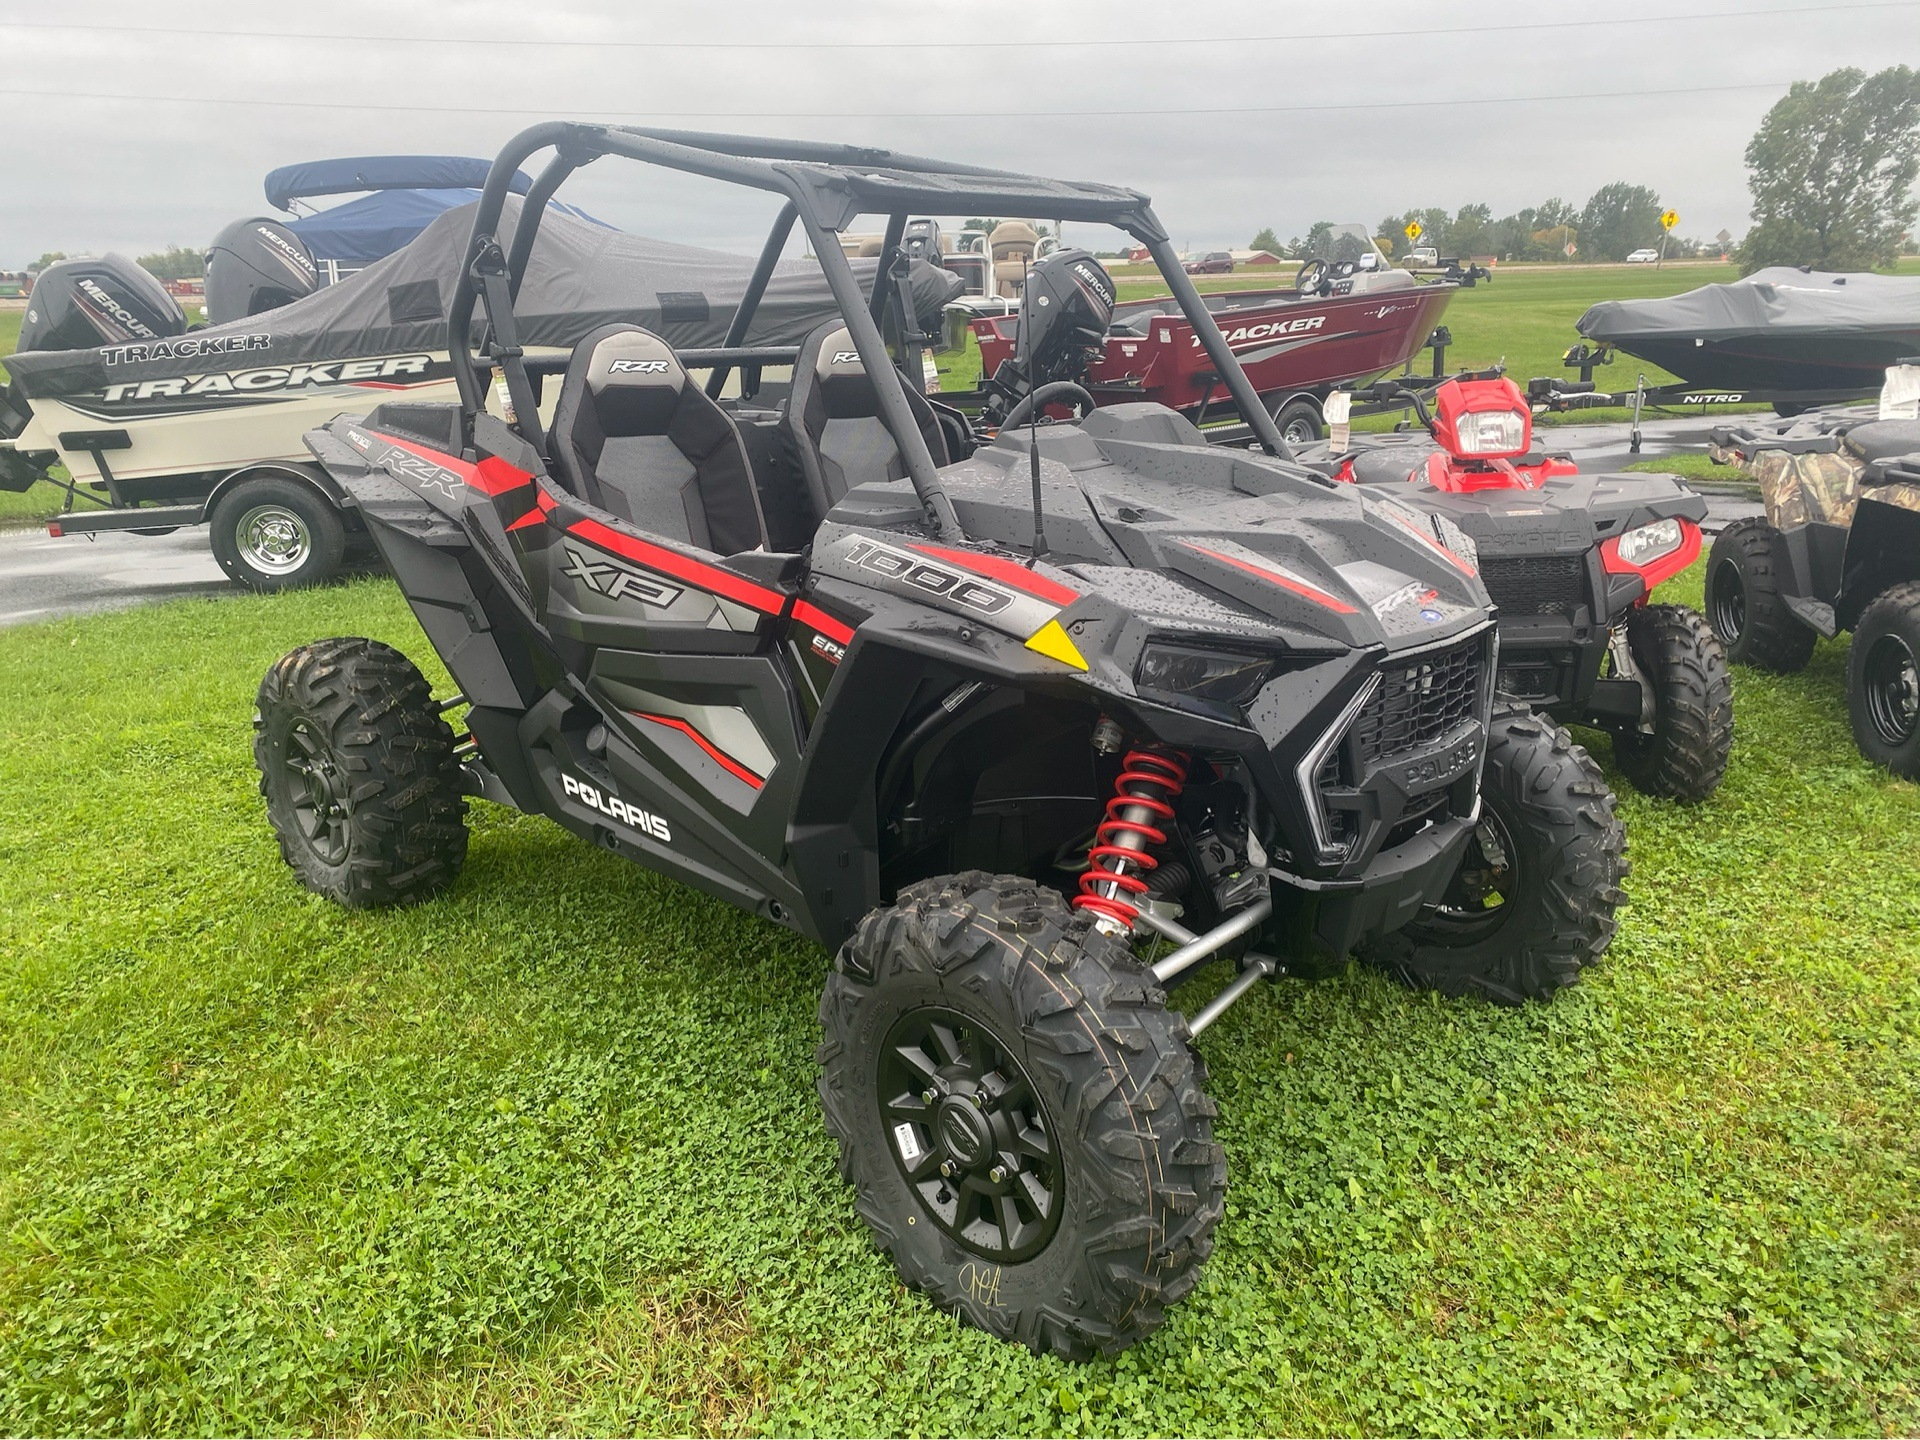 2019 Polaris RZR XP 1000 Ride Command in Appleton, Wisconsin - Photo 1